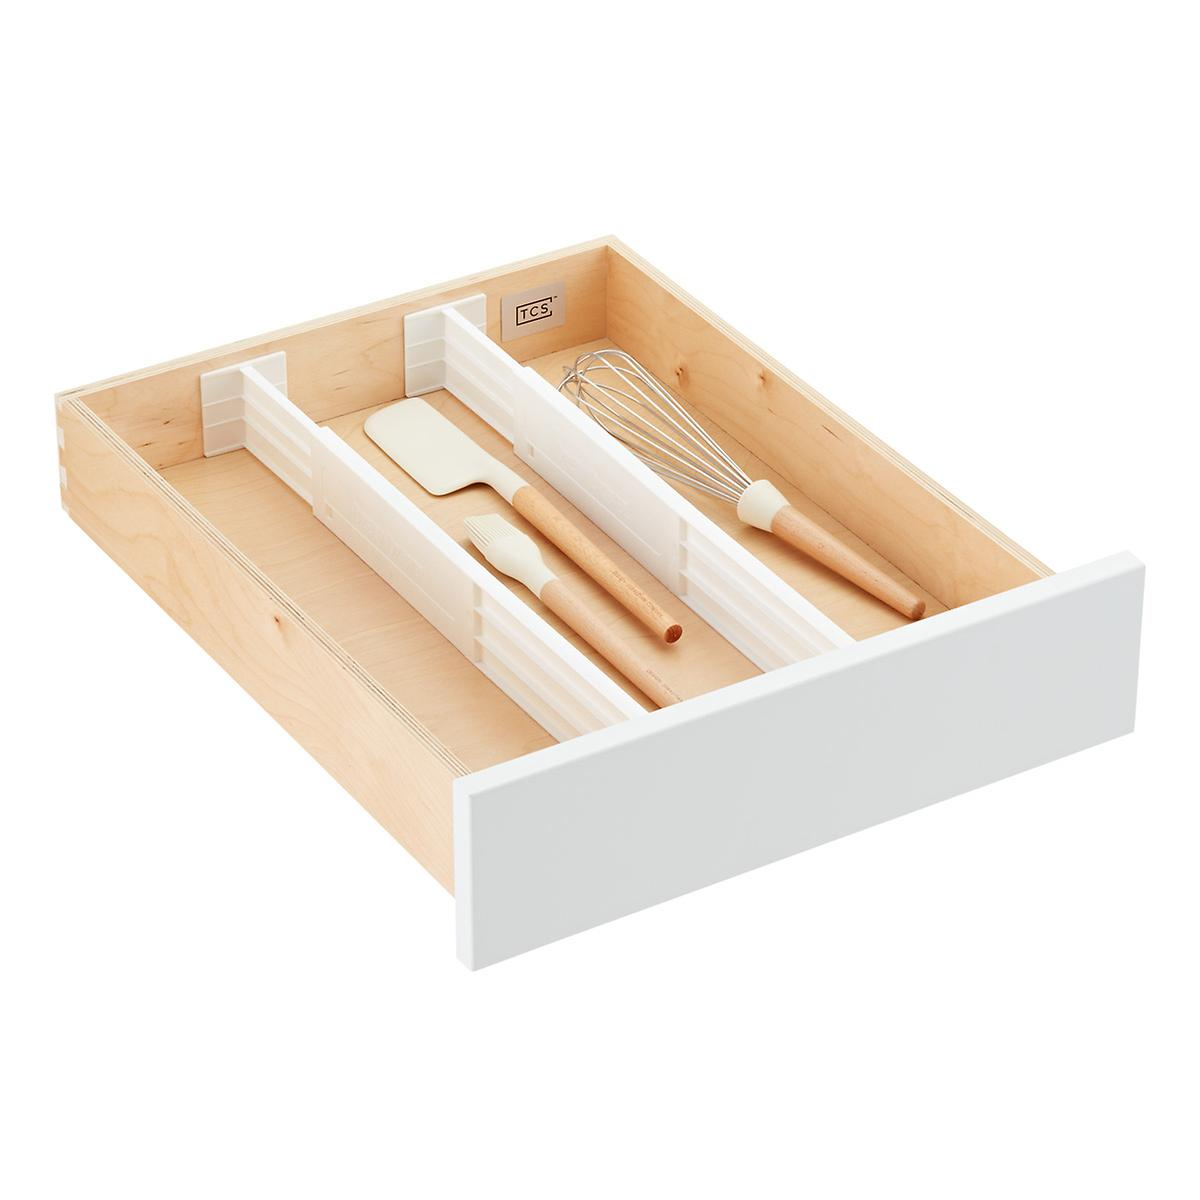 convenience drawer organizer kitchen two cutlery watch flatware youtube showplace tiered accessories